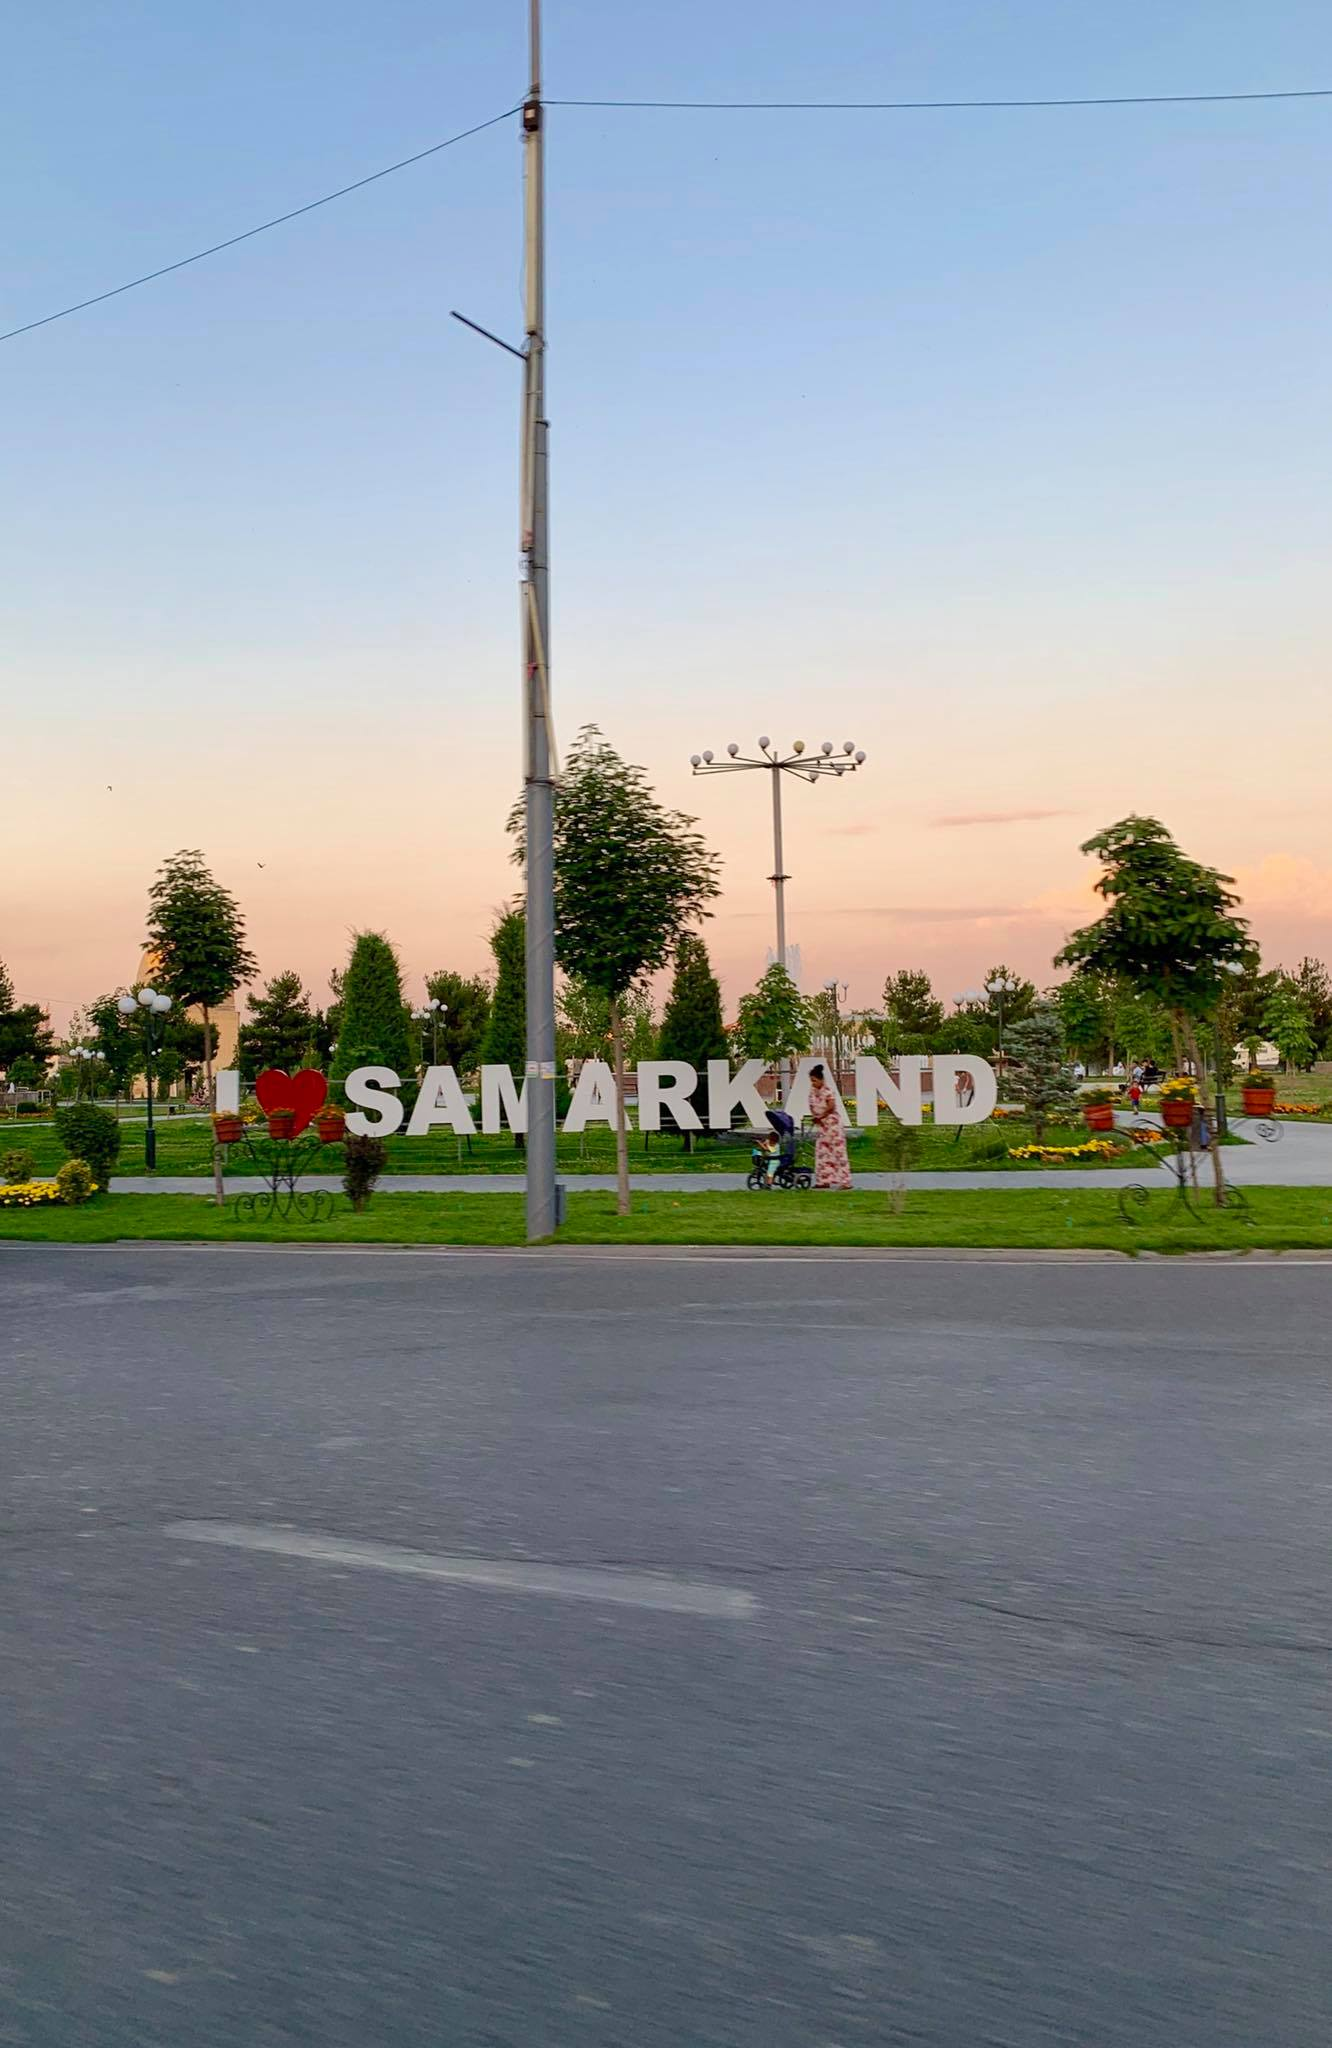 Kach Solo Travels in 2019 Hello from Samarqand  Samarkand in the southeastern part of Uzbekistan37.jpg